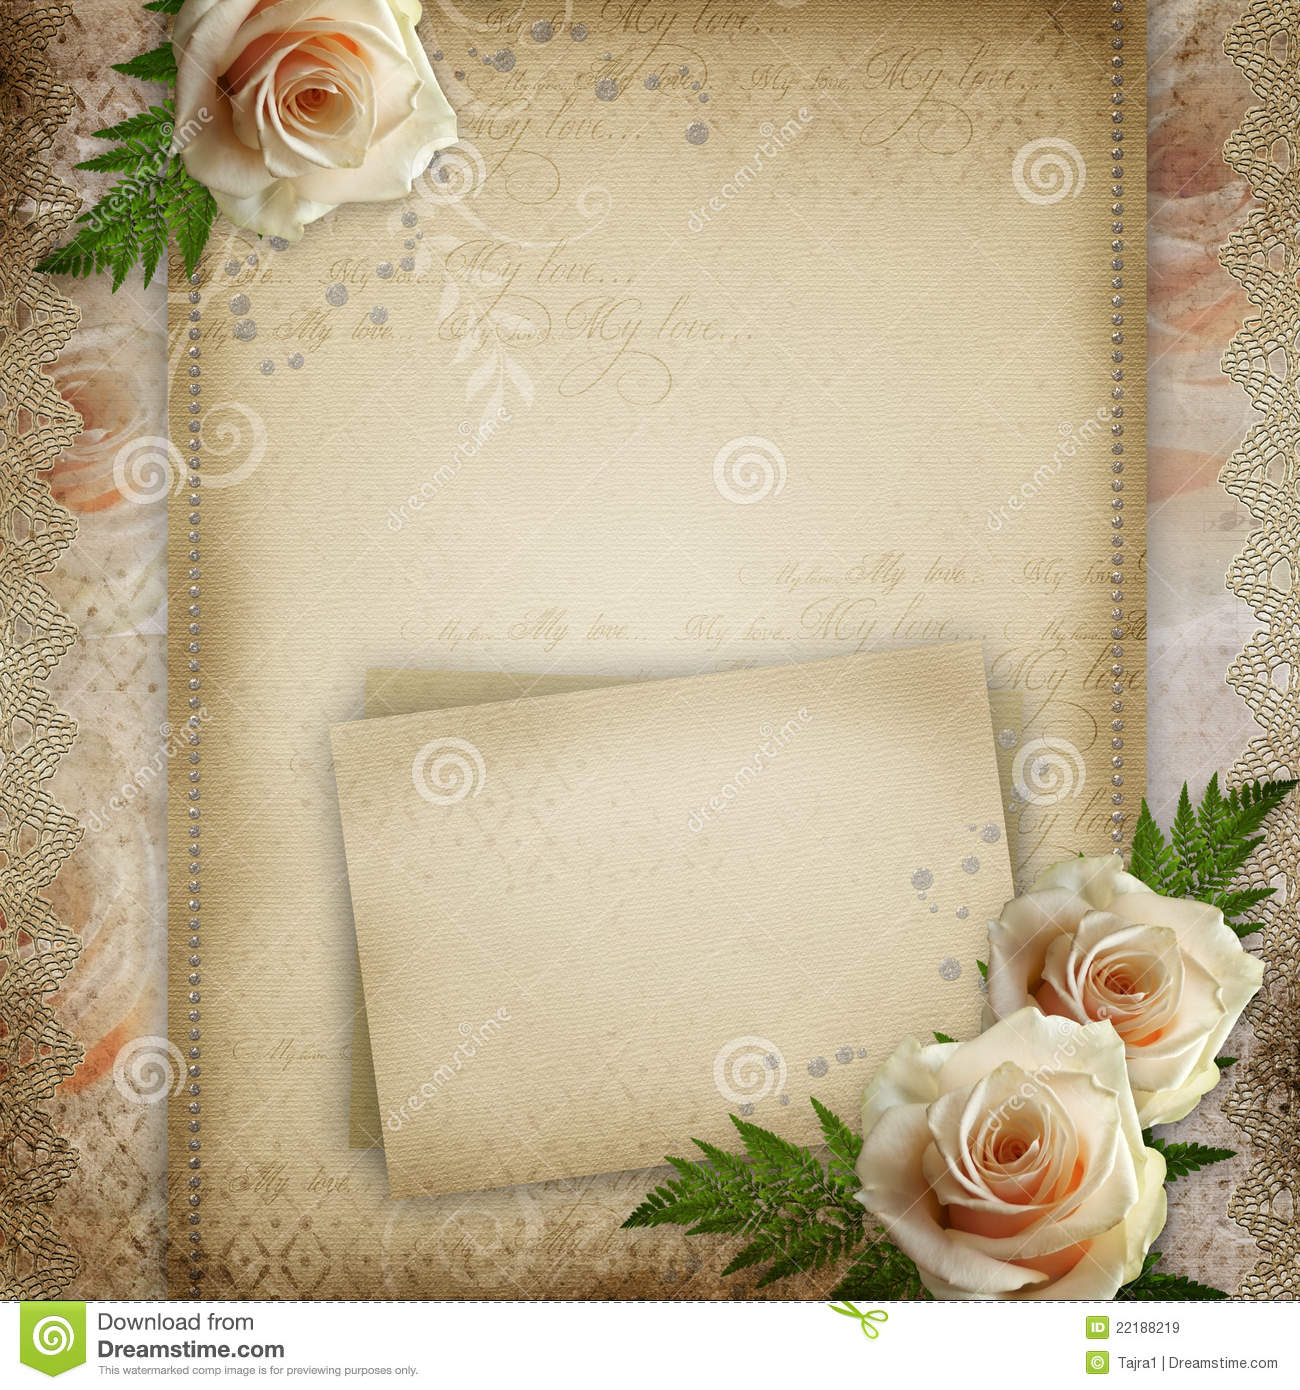 vintage beautiful wedding background stock illustration illustration of marriage celebration 22188219 dreamstime com